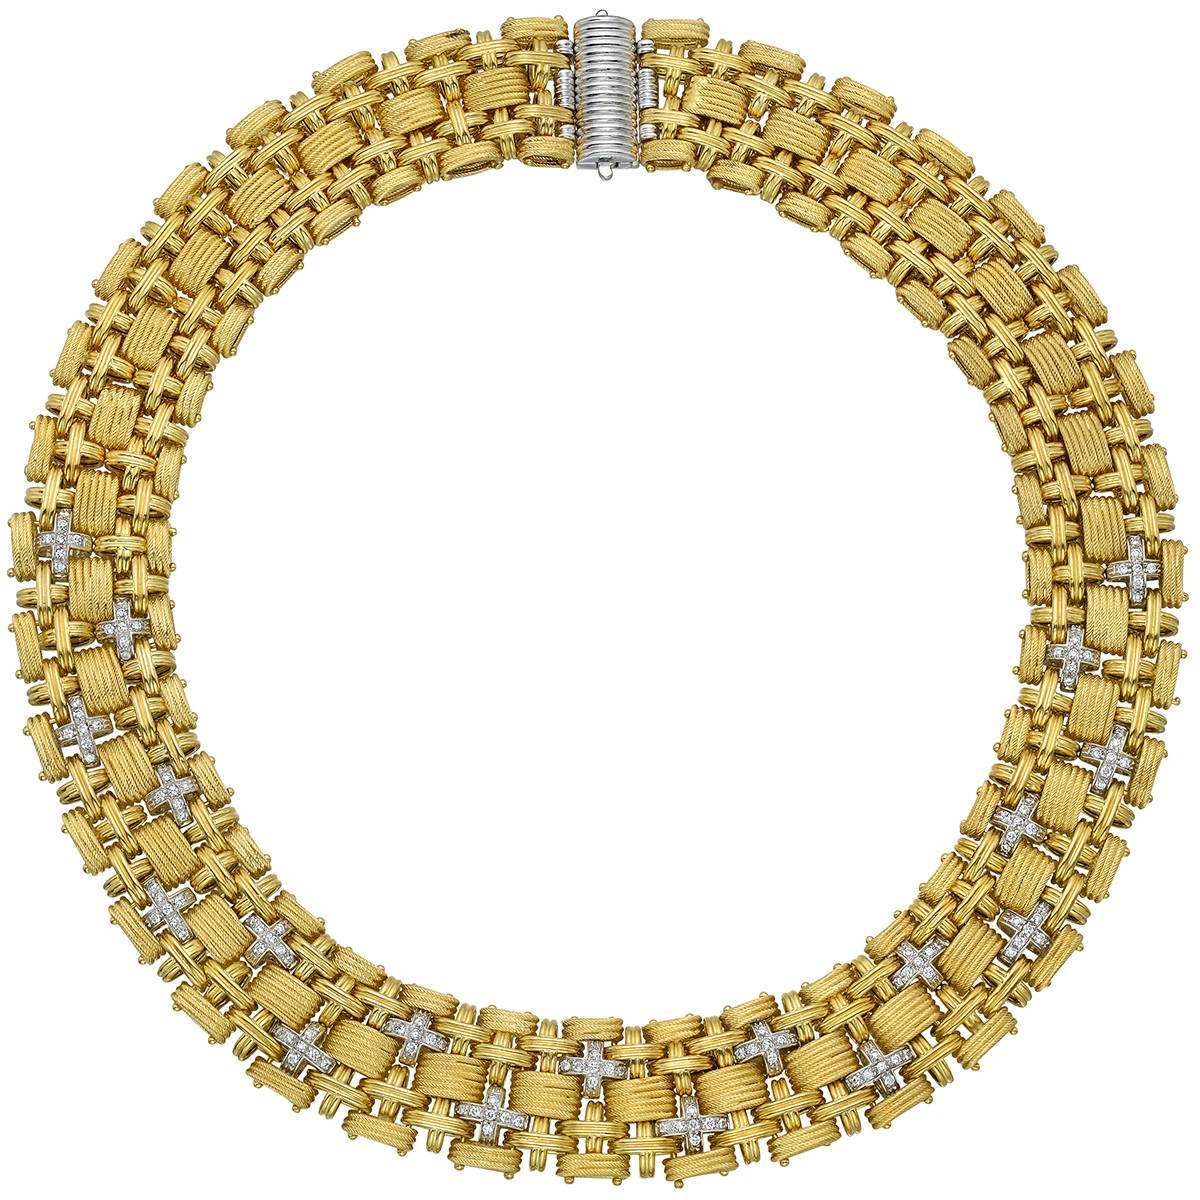 18k Yellow Gold & Diamond Collar Necklace